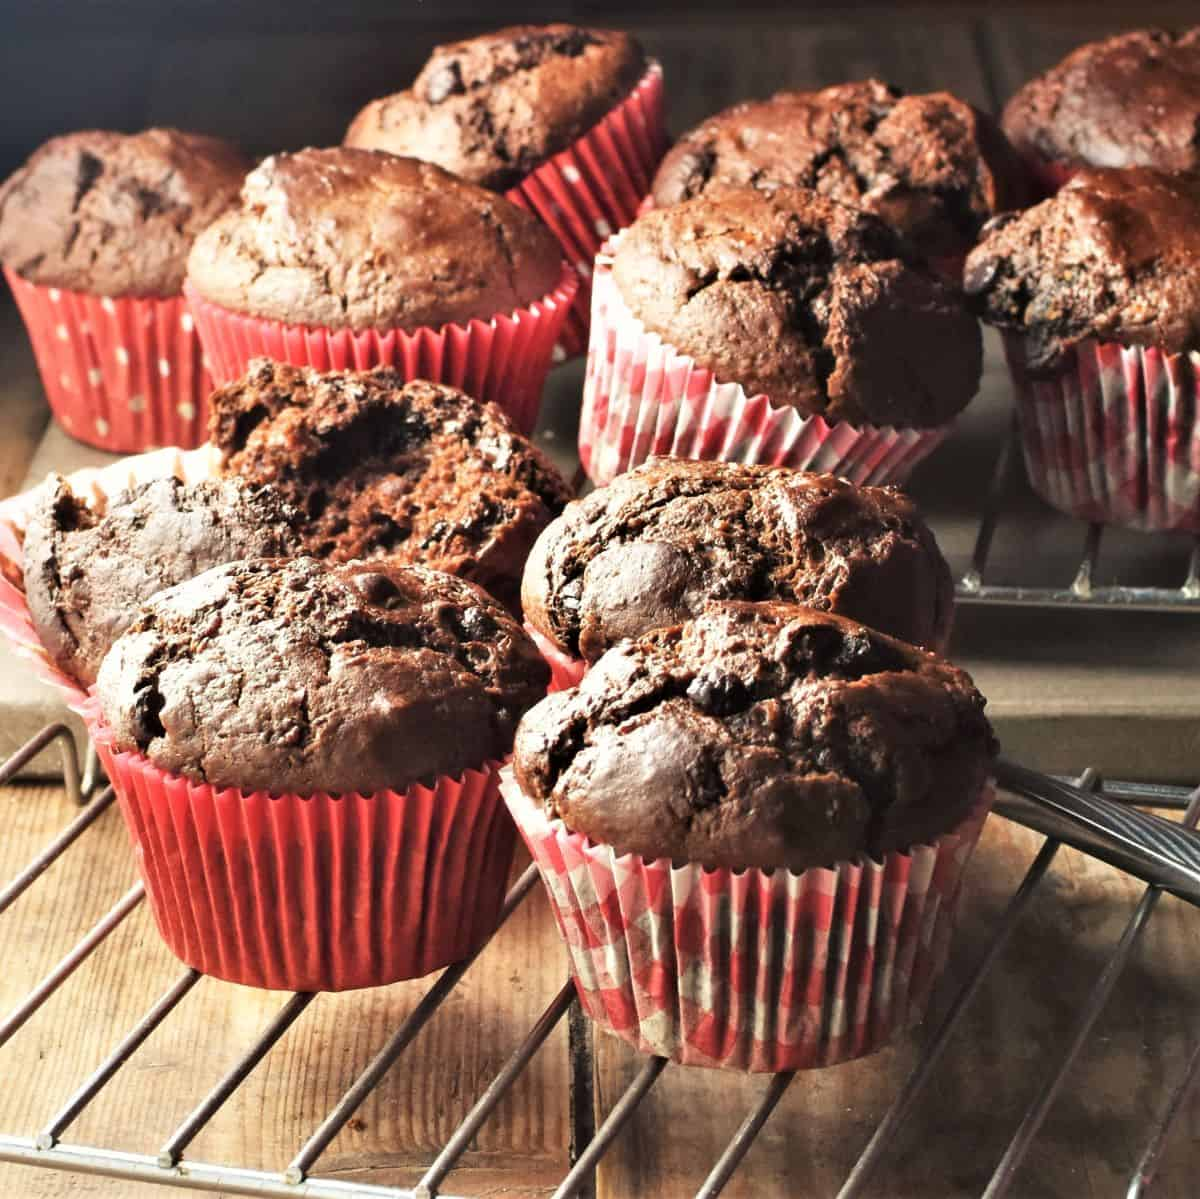 Side view of healthy chocolate muffins in red paper cases on top of rack.